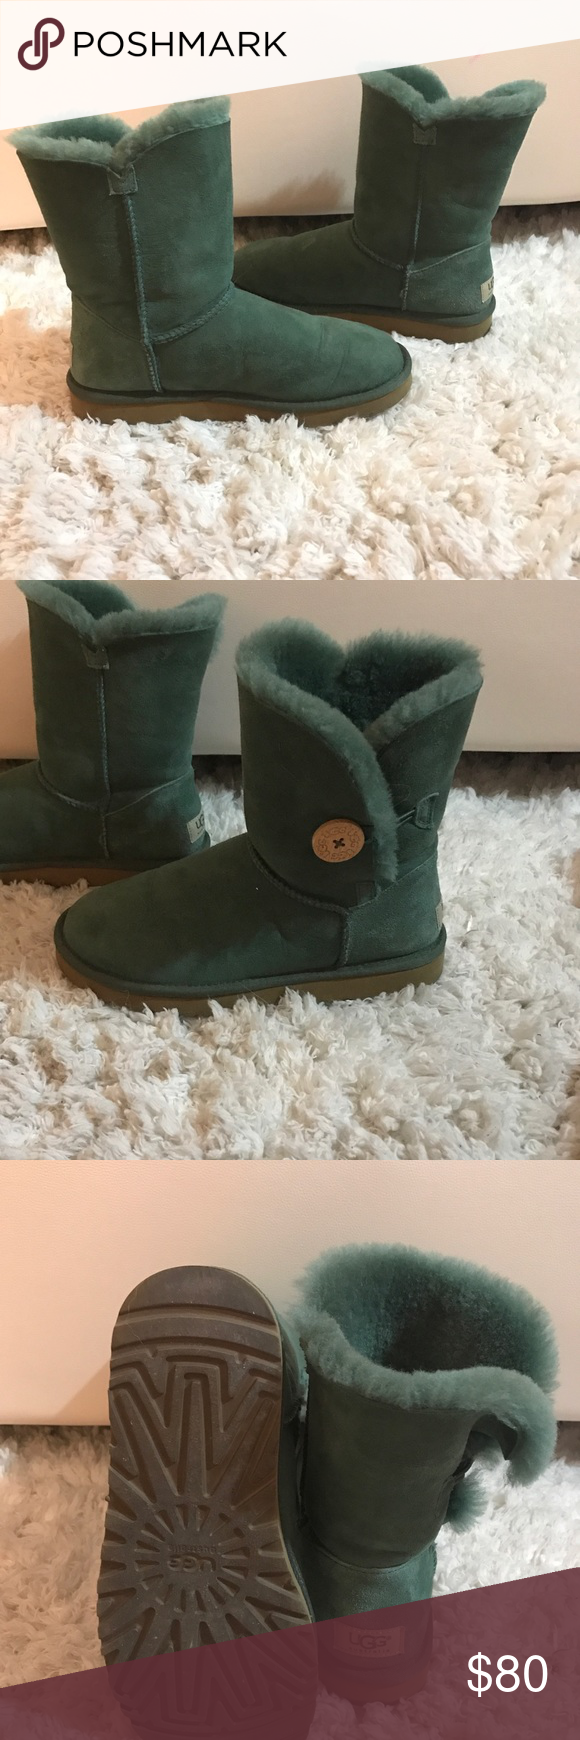 4cd38ea31fb Dark green uggs Like new only worn twice in great condition inside ...